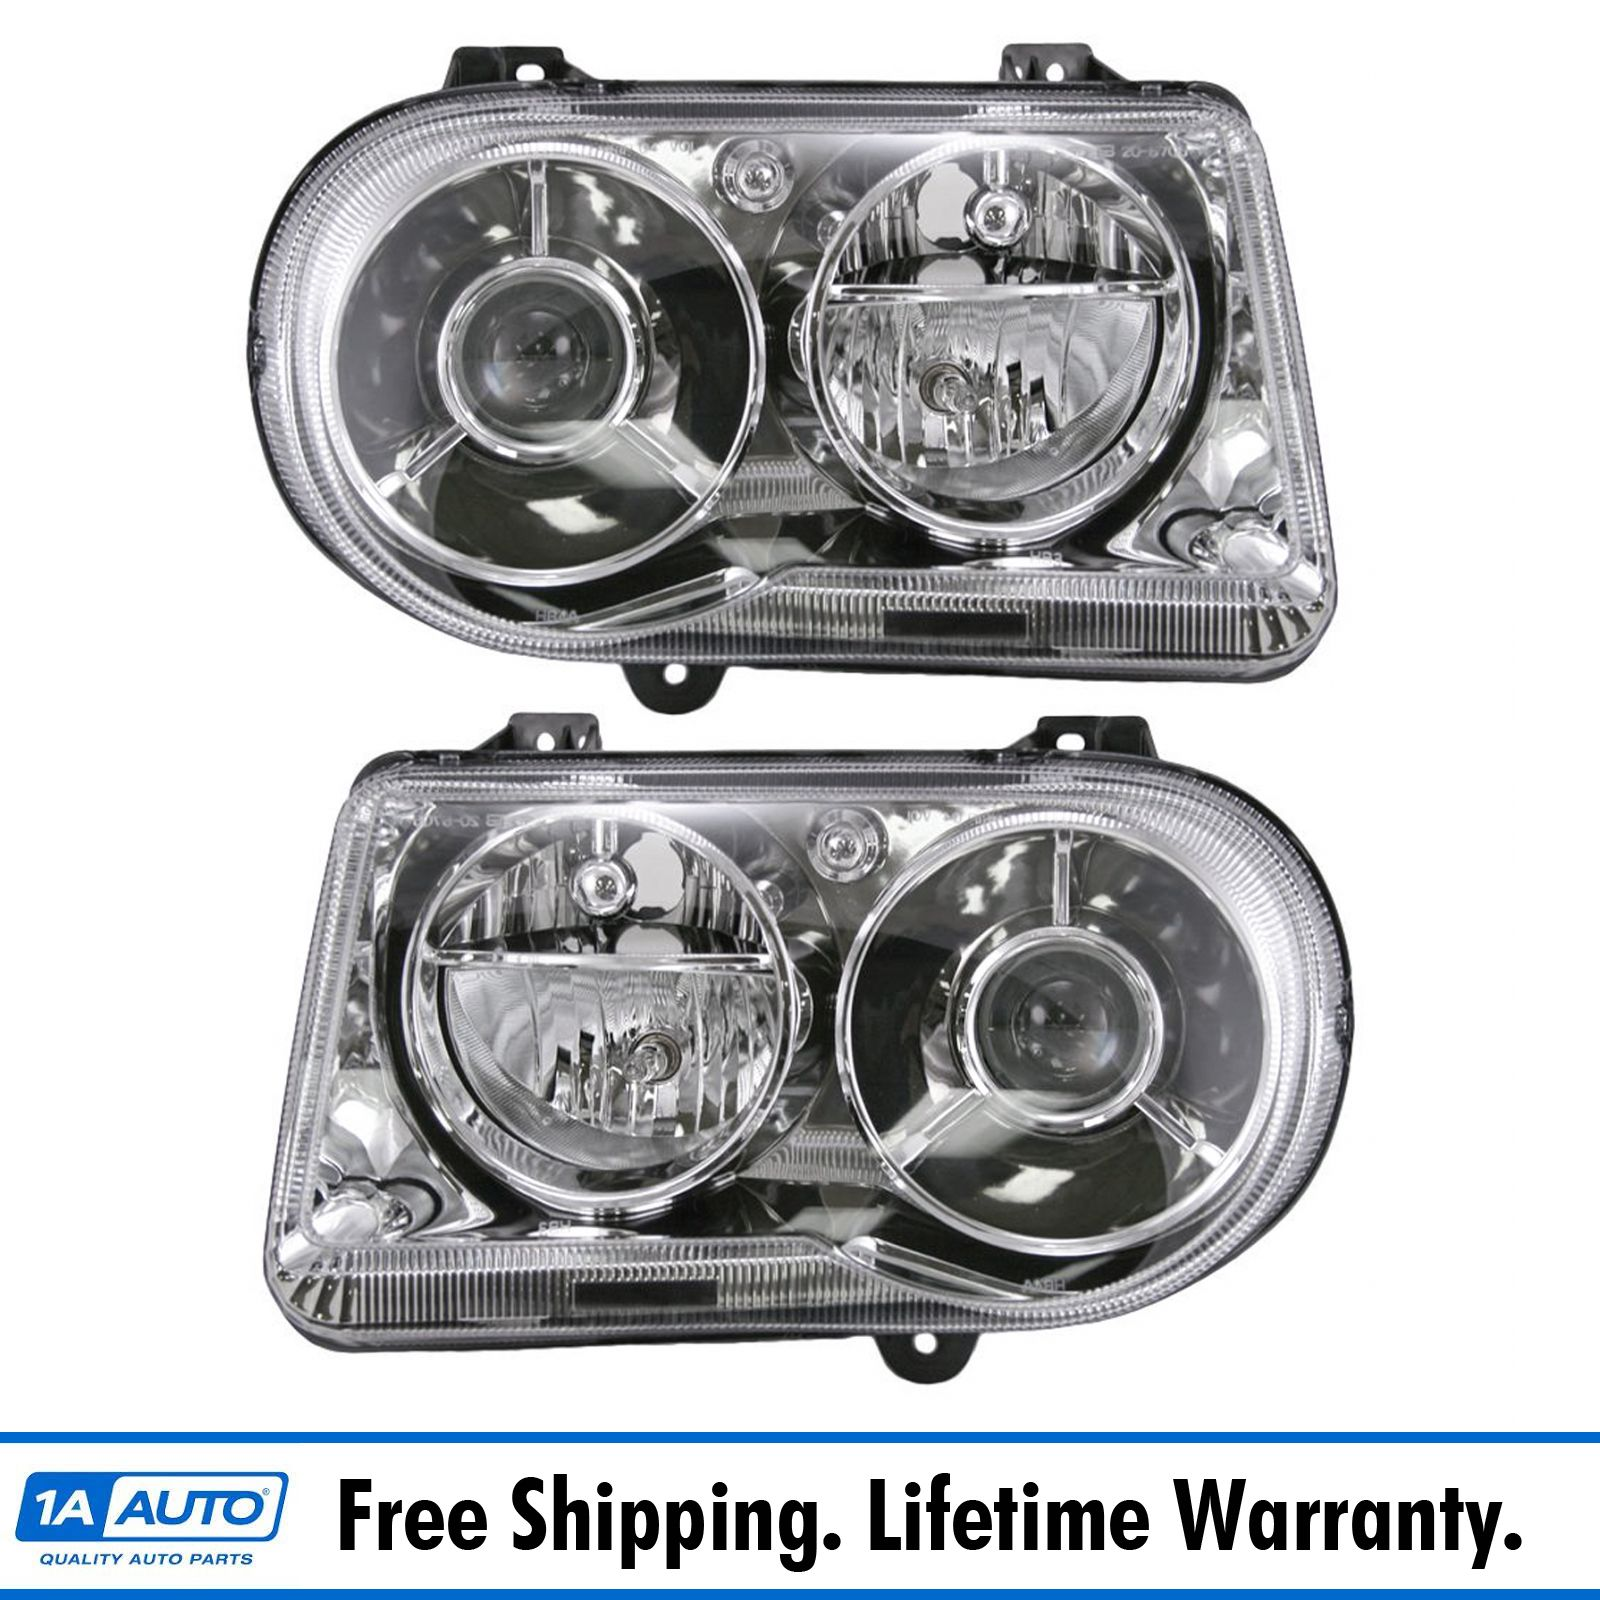 05 06 07 08 09 10 Chrysler 300C Headlight Headlamp Pair